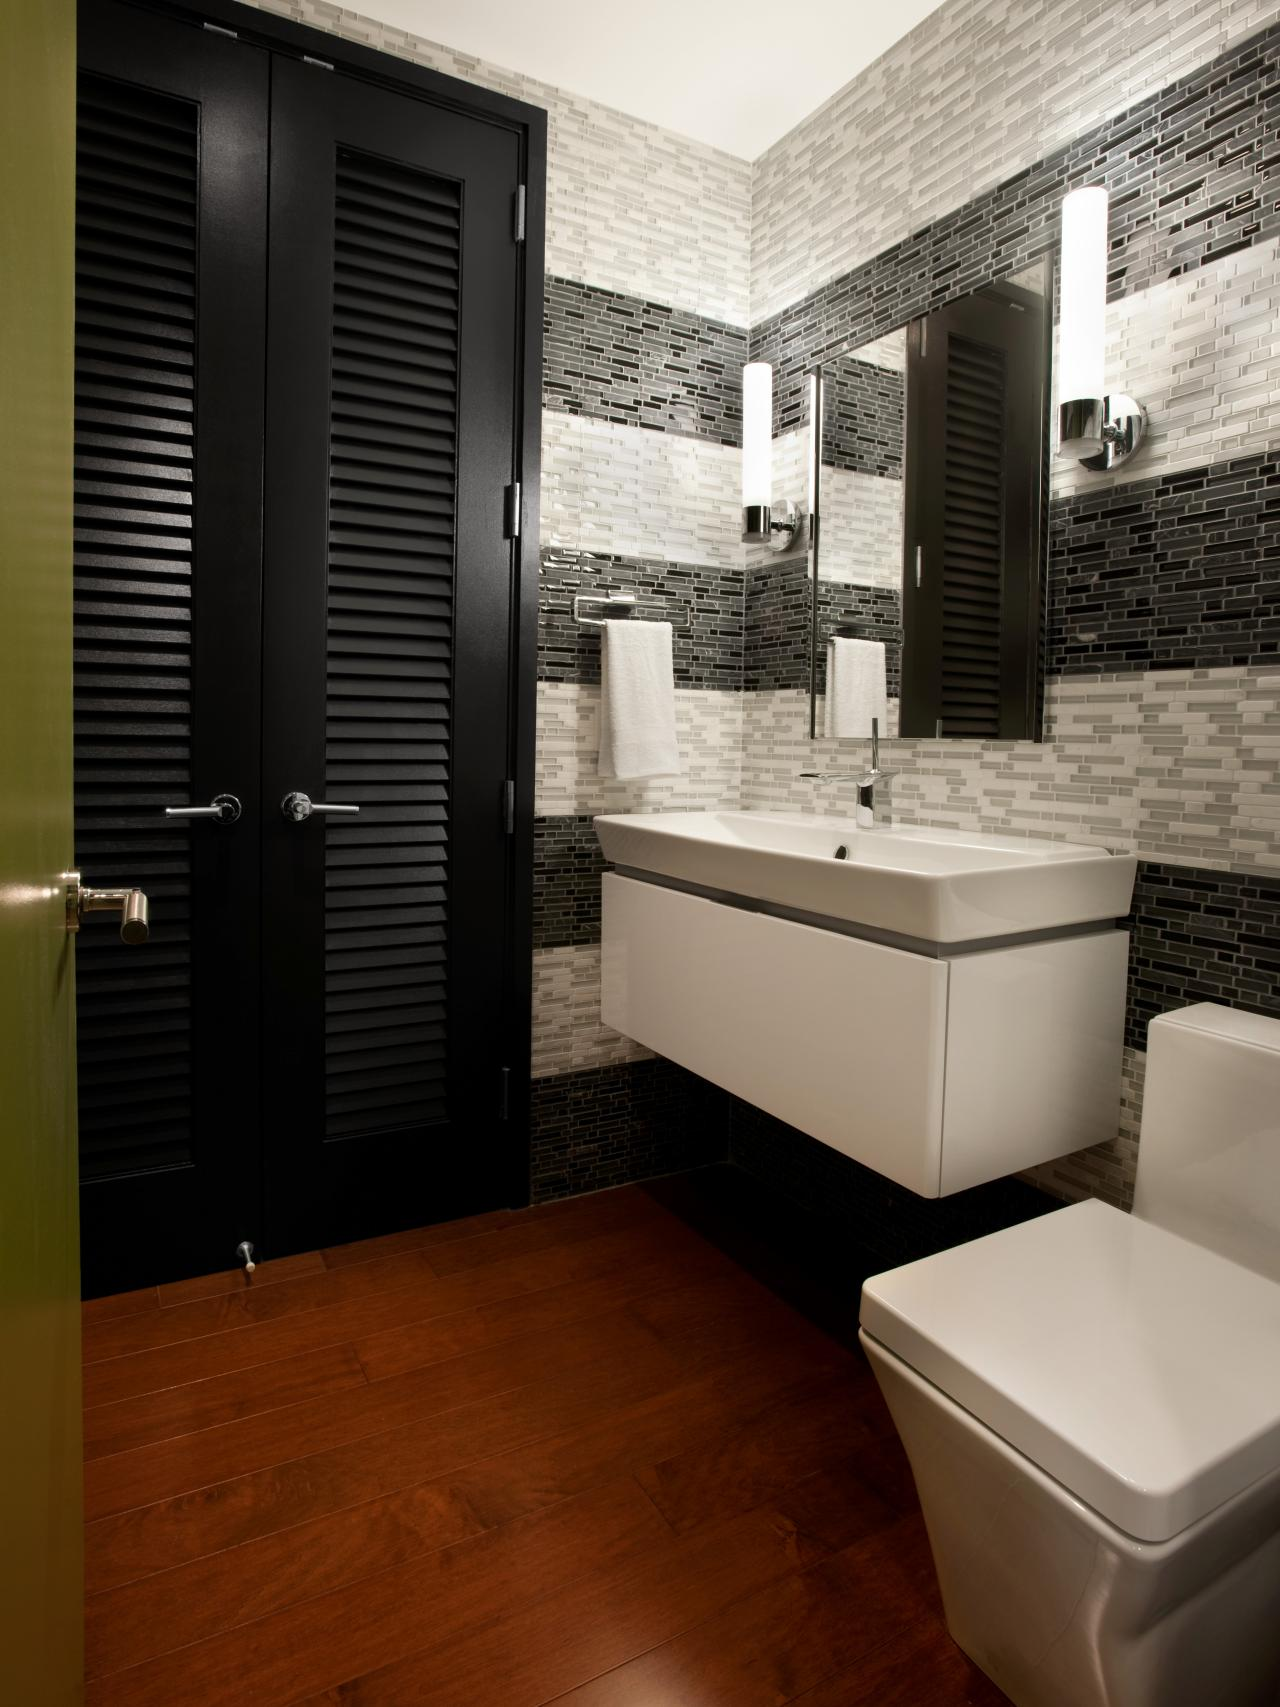 Modern bathroom design ideas pictures tips from hgtv hgtv - Pictures of bathroom designs ...